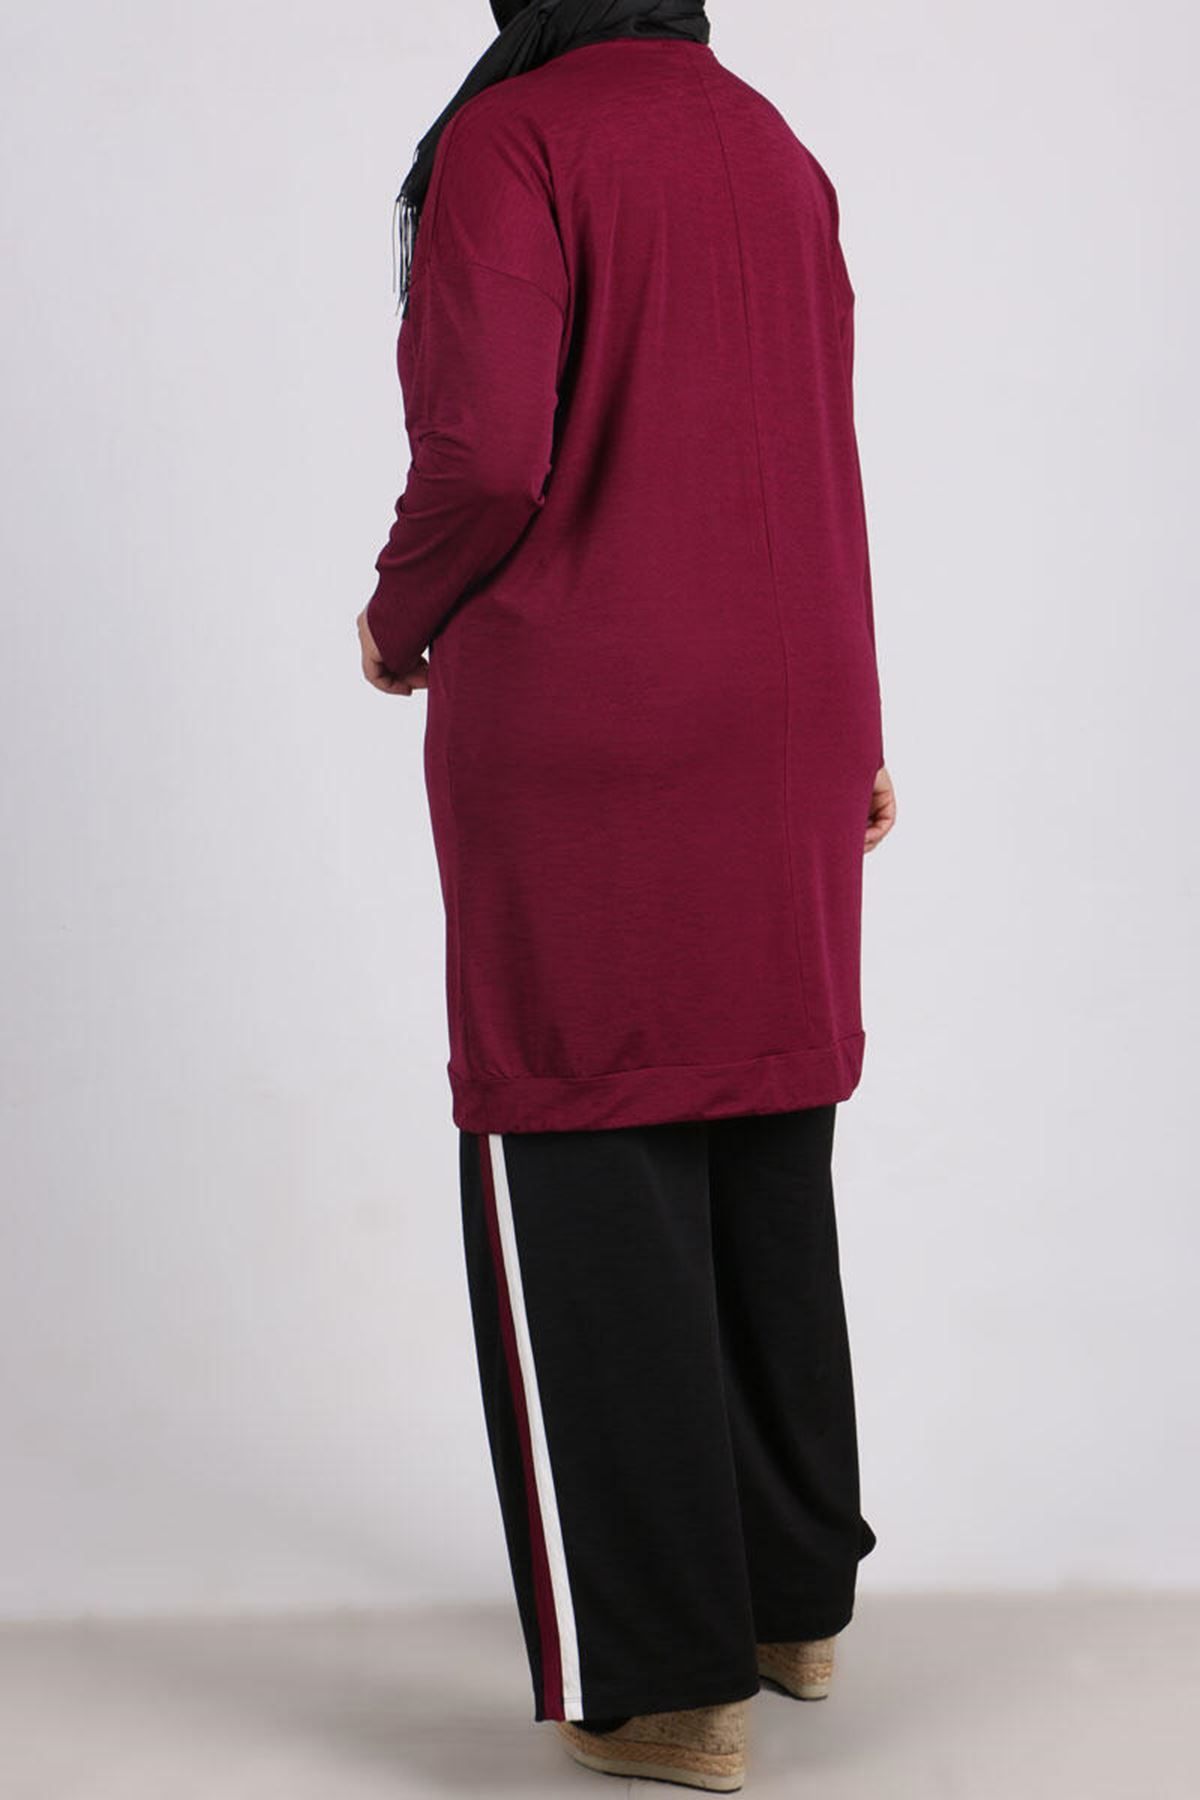 7678 Plus Size Two Piece Set with Tunic and Pants- Plum - Black